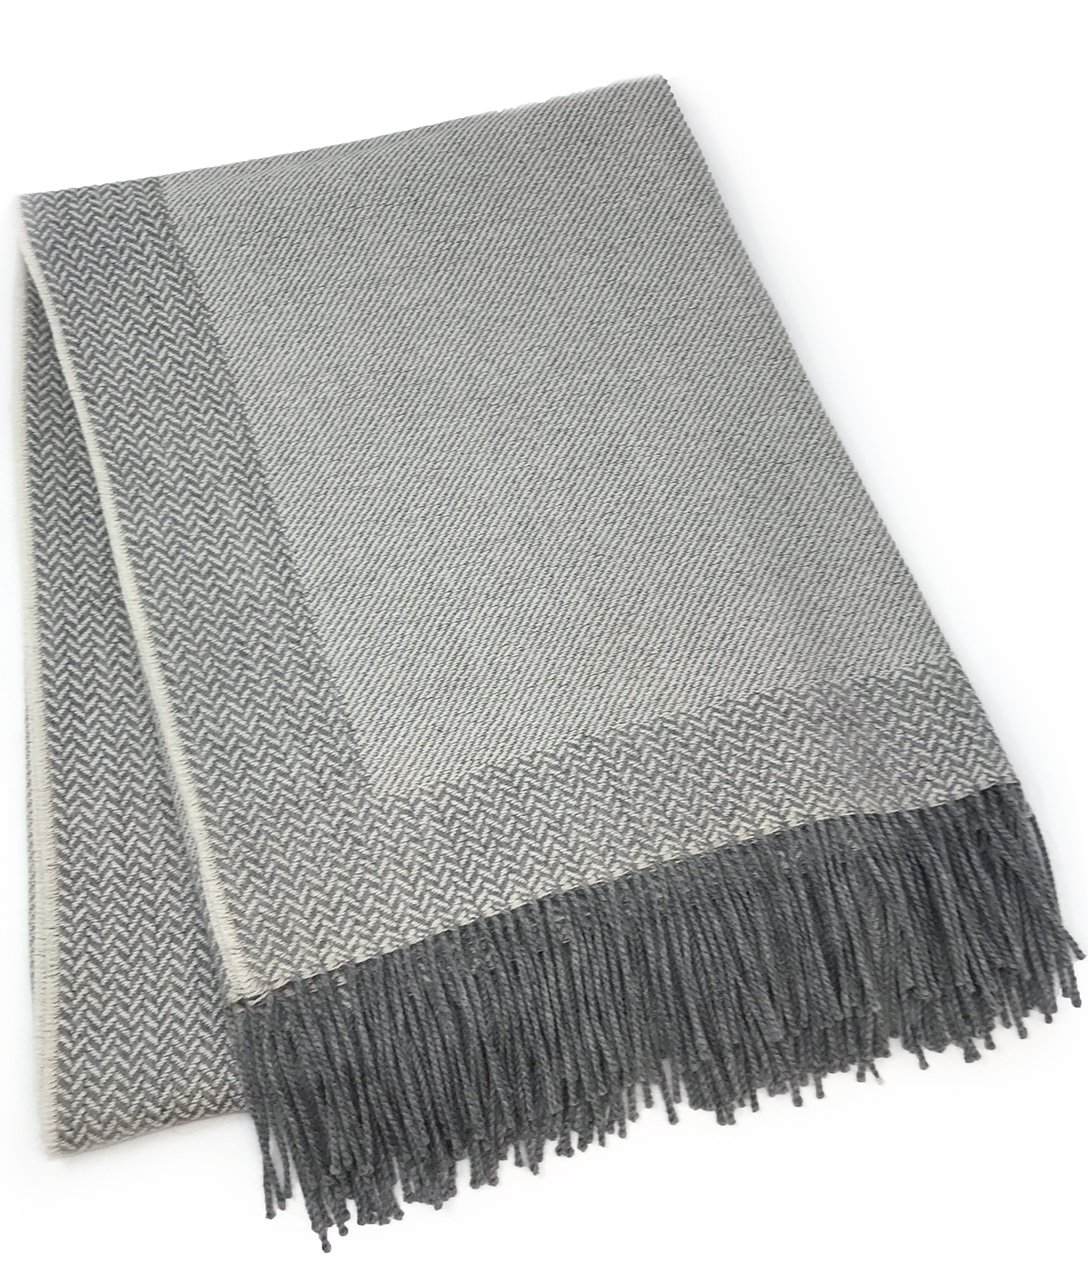 Incredibly Soft 100% Baby Alpaca Wool Sofa Throw Blanket - Woven by Hand, All Natural, Reversible Herringbone Pattern with Fringe Perfect for Bedroom or Living Room (Silver / Bone)